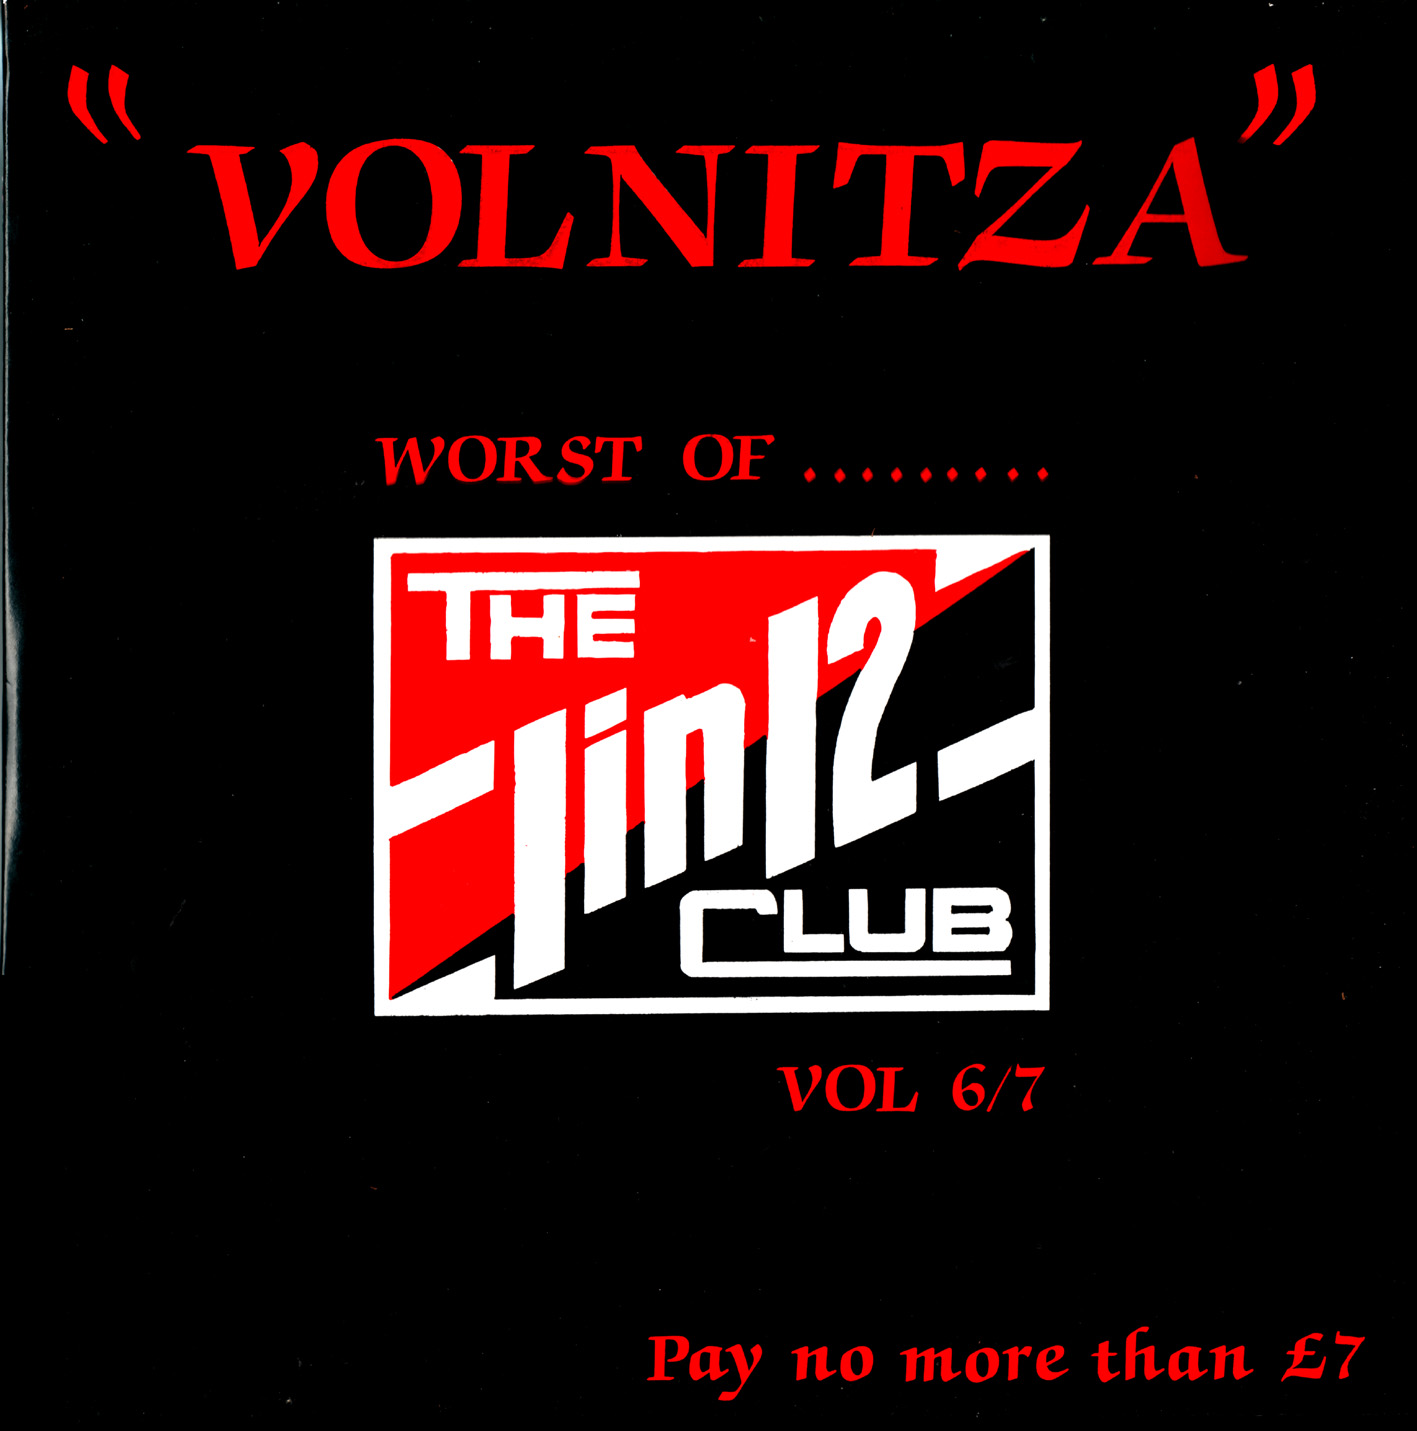 1 In 12 Club - Volnitza